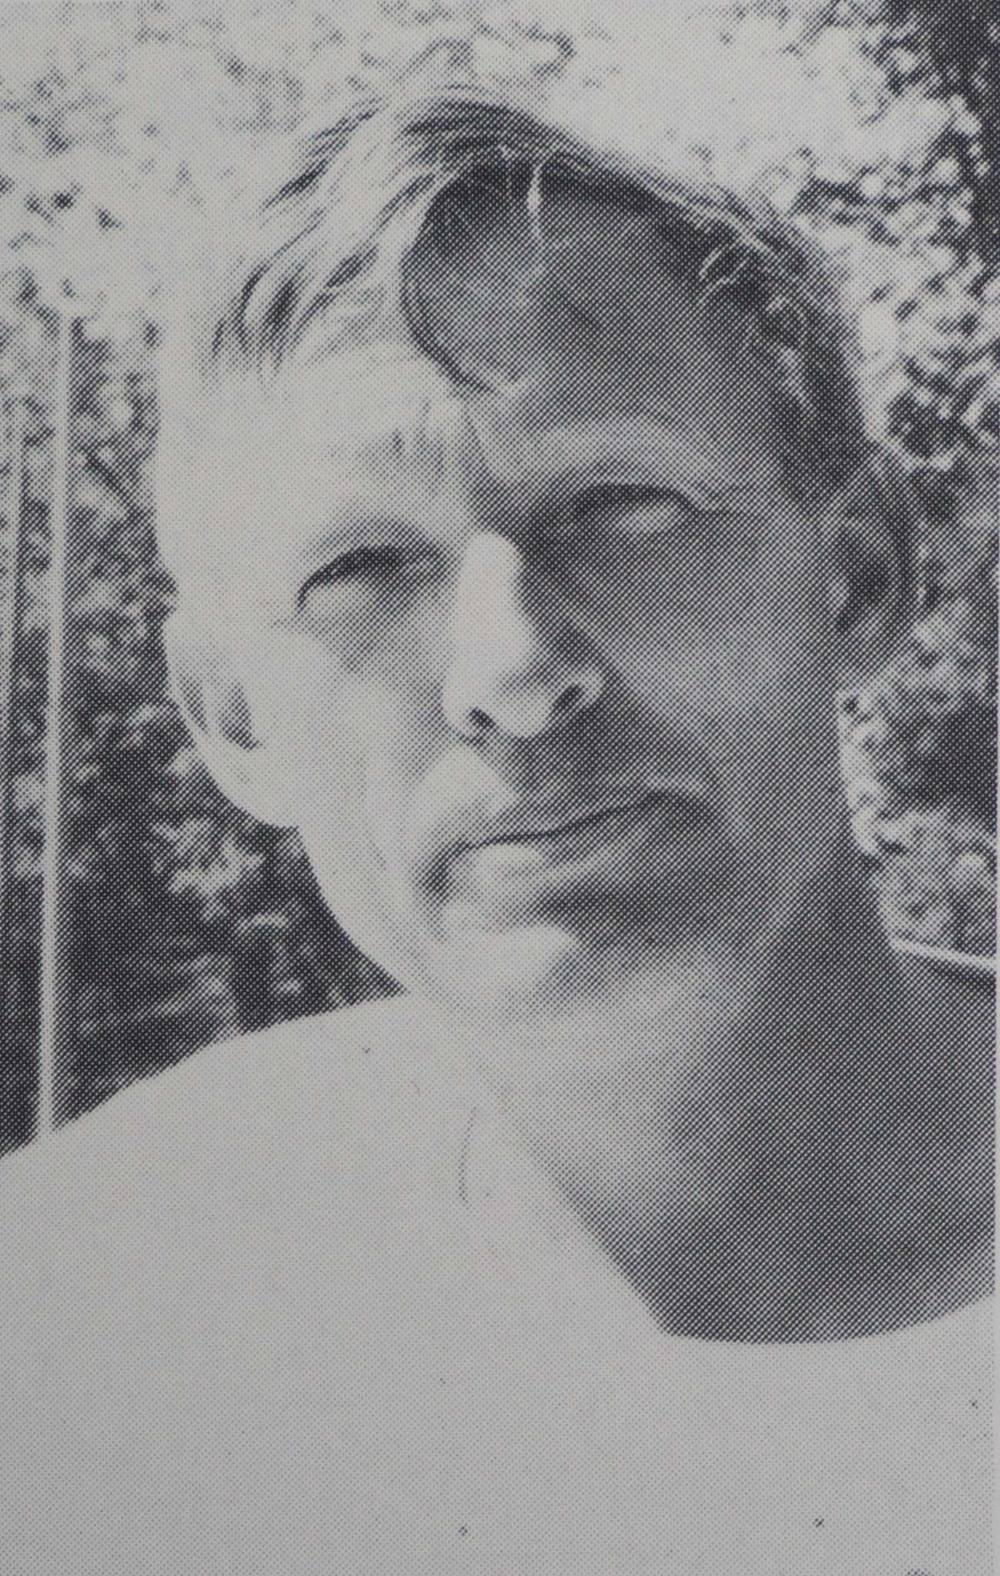 Glenn Wegener in 1975